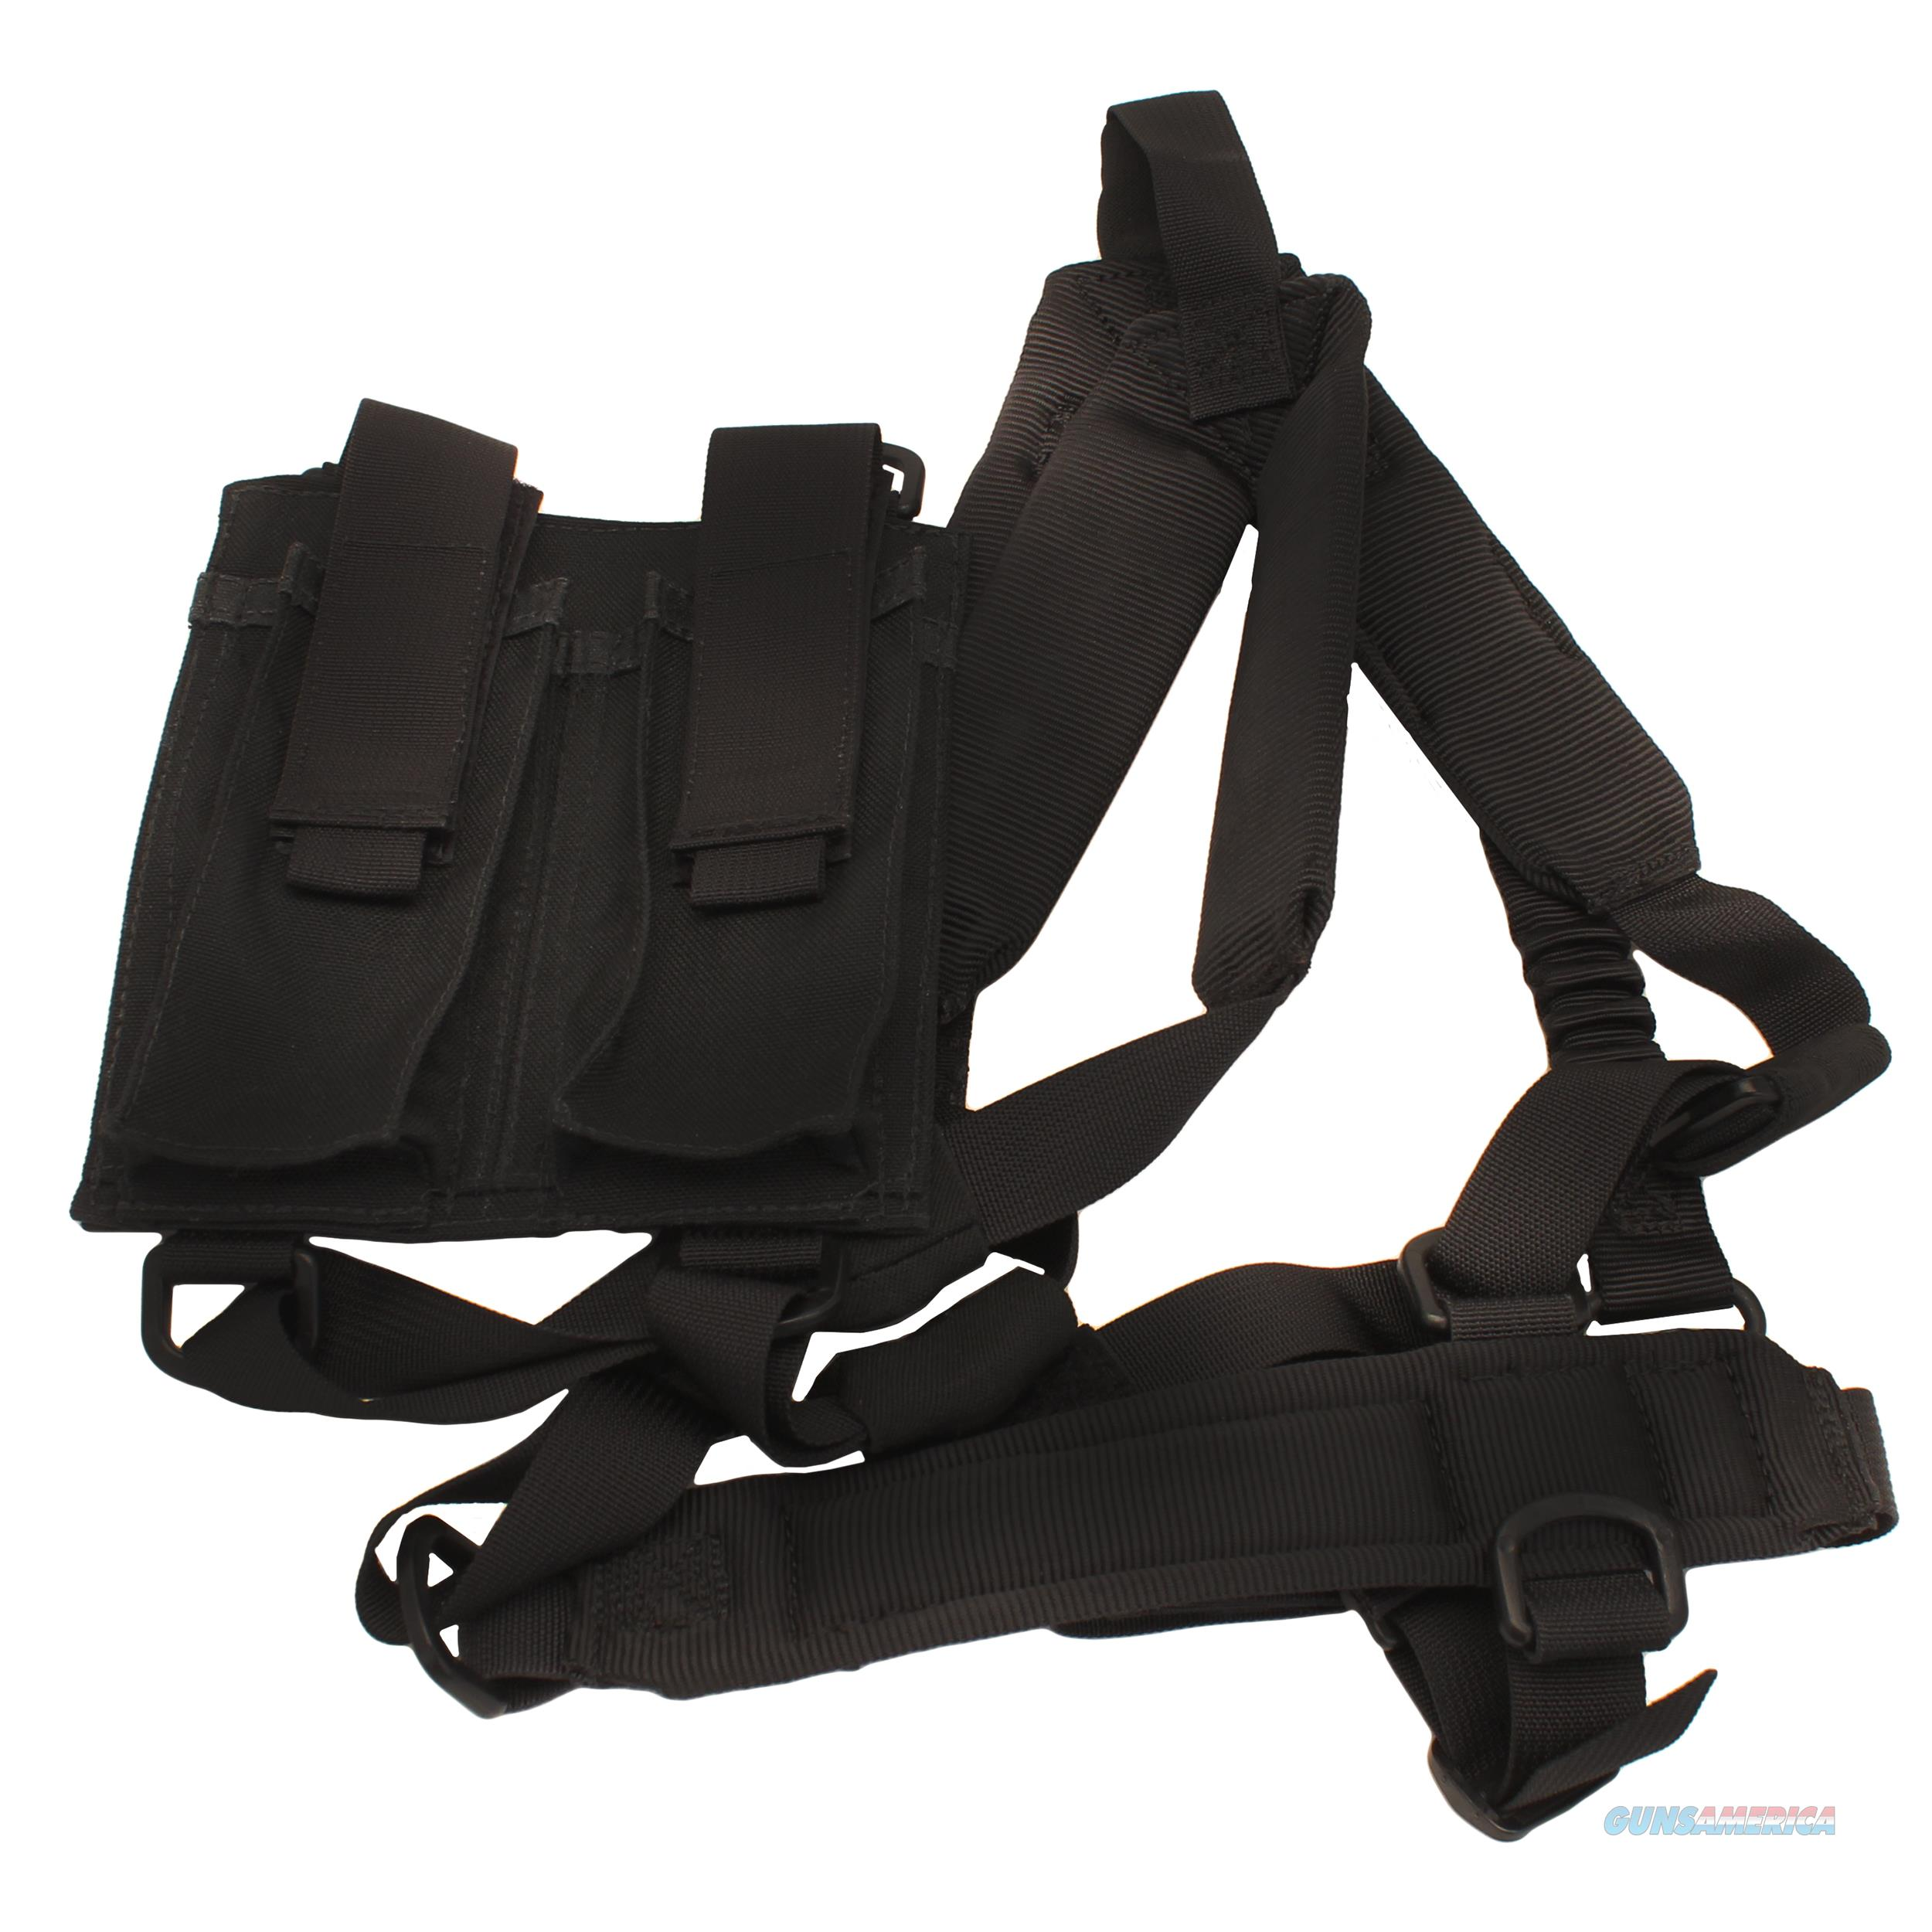 Troy Industries Inc Pdw Shoulder Harness Sling SSLI-PSH-00BT-00  Non-Guns > Holsters and Gunleather > Other